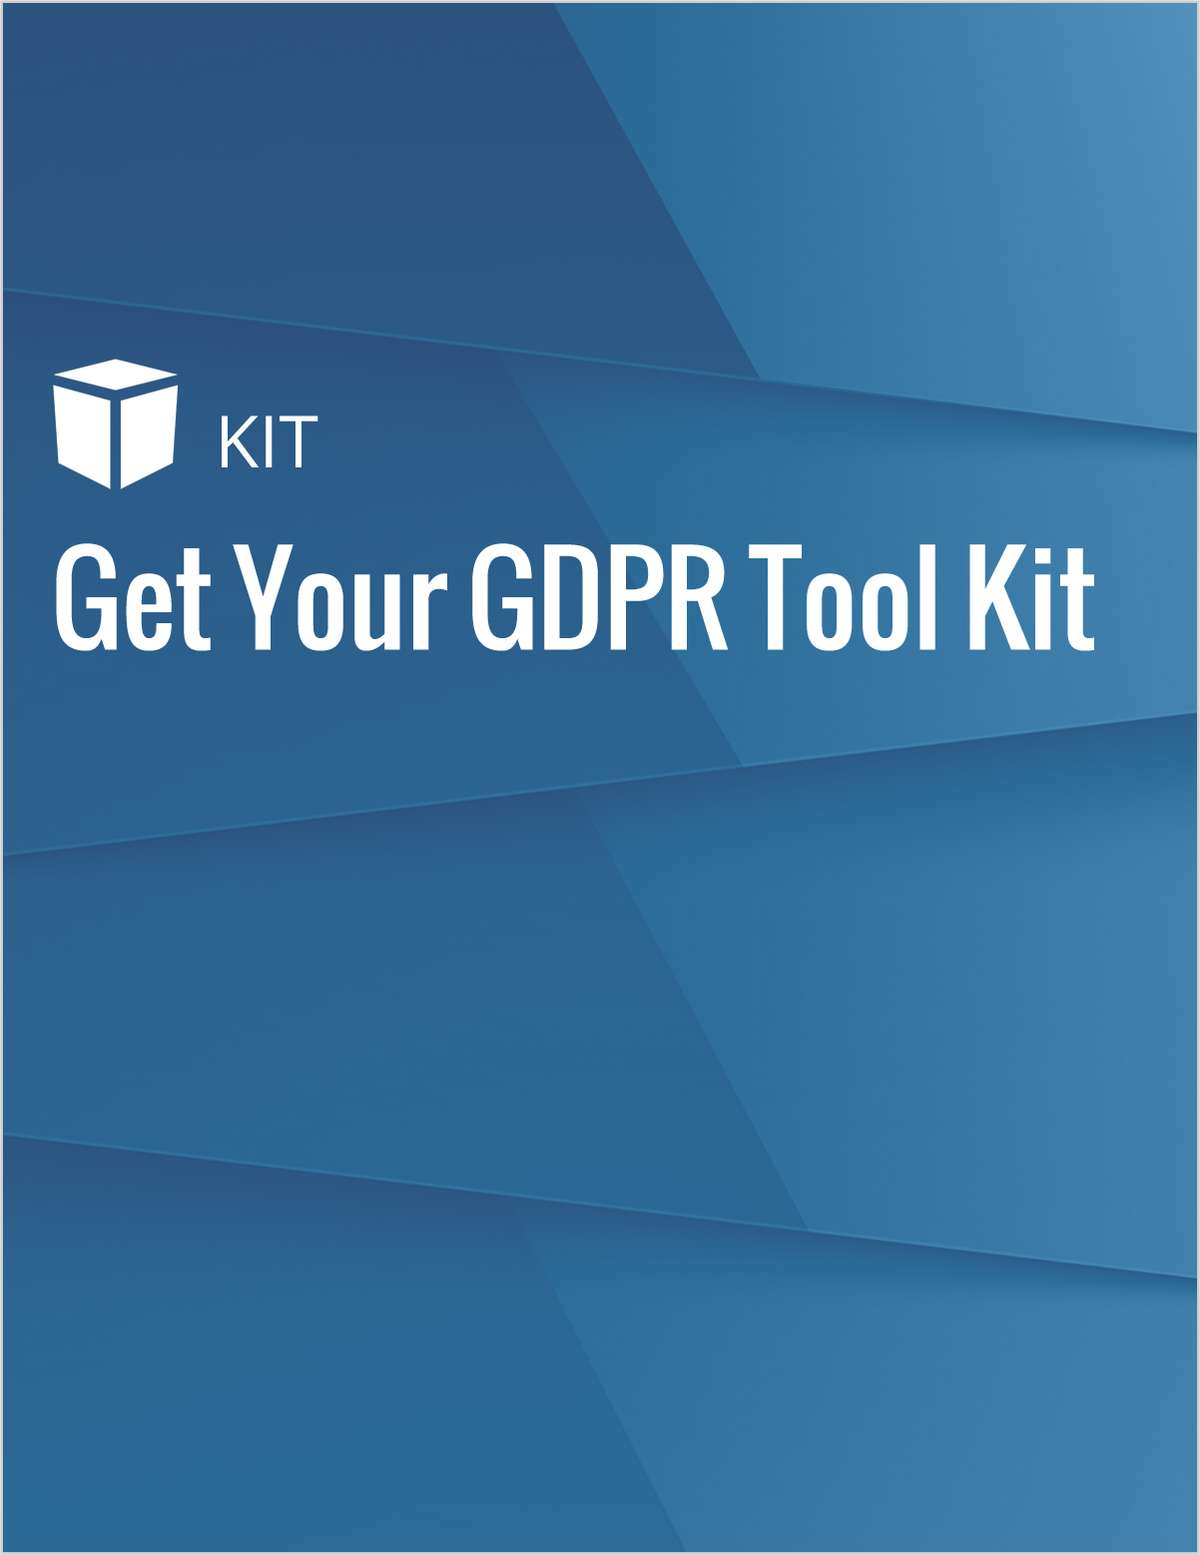 Get Your GDPR Tool Kit